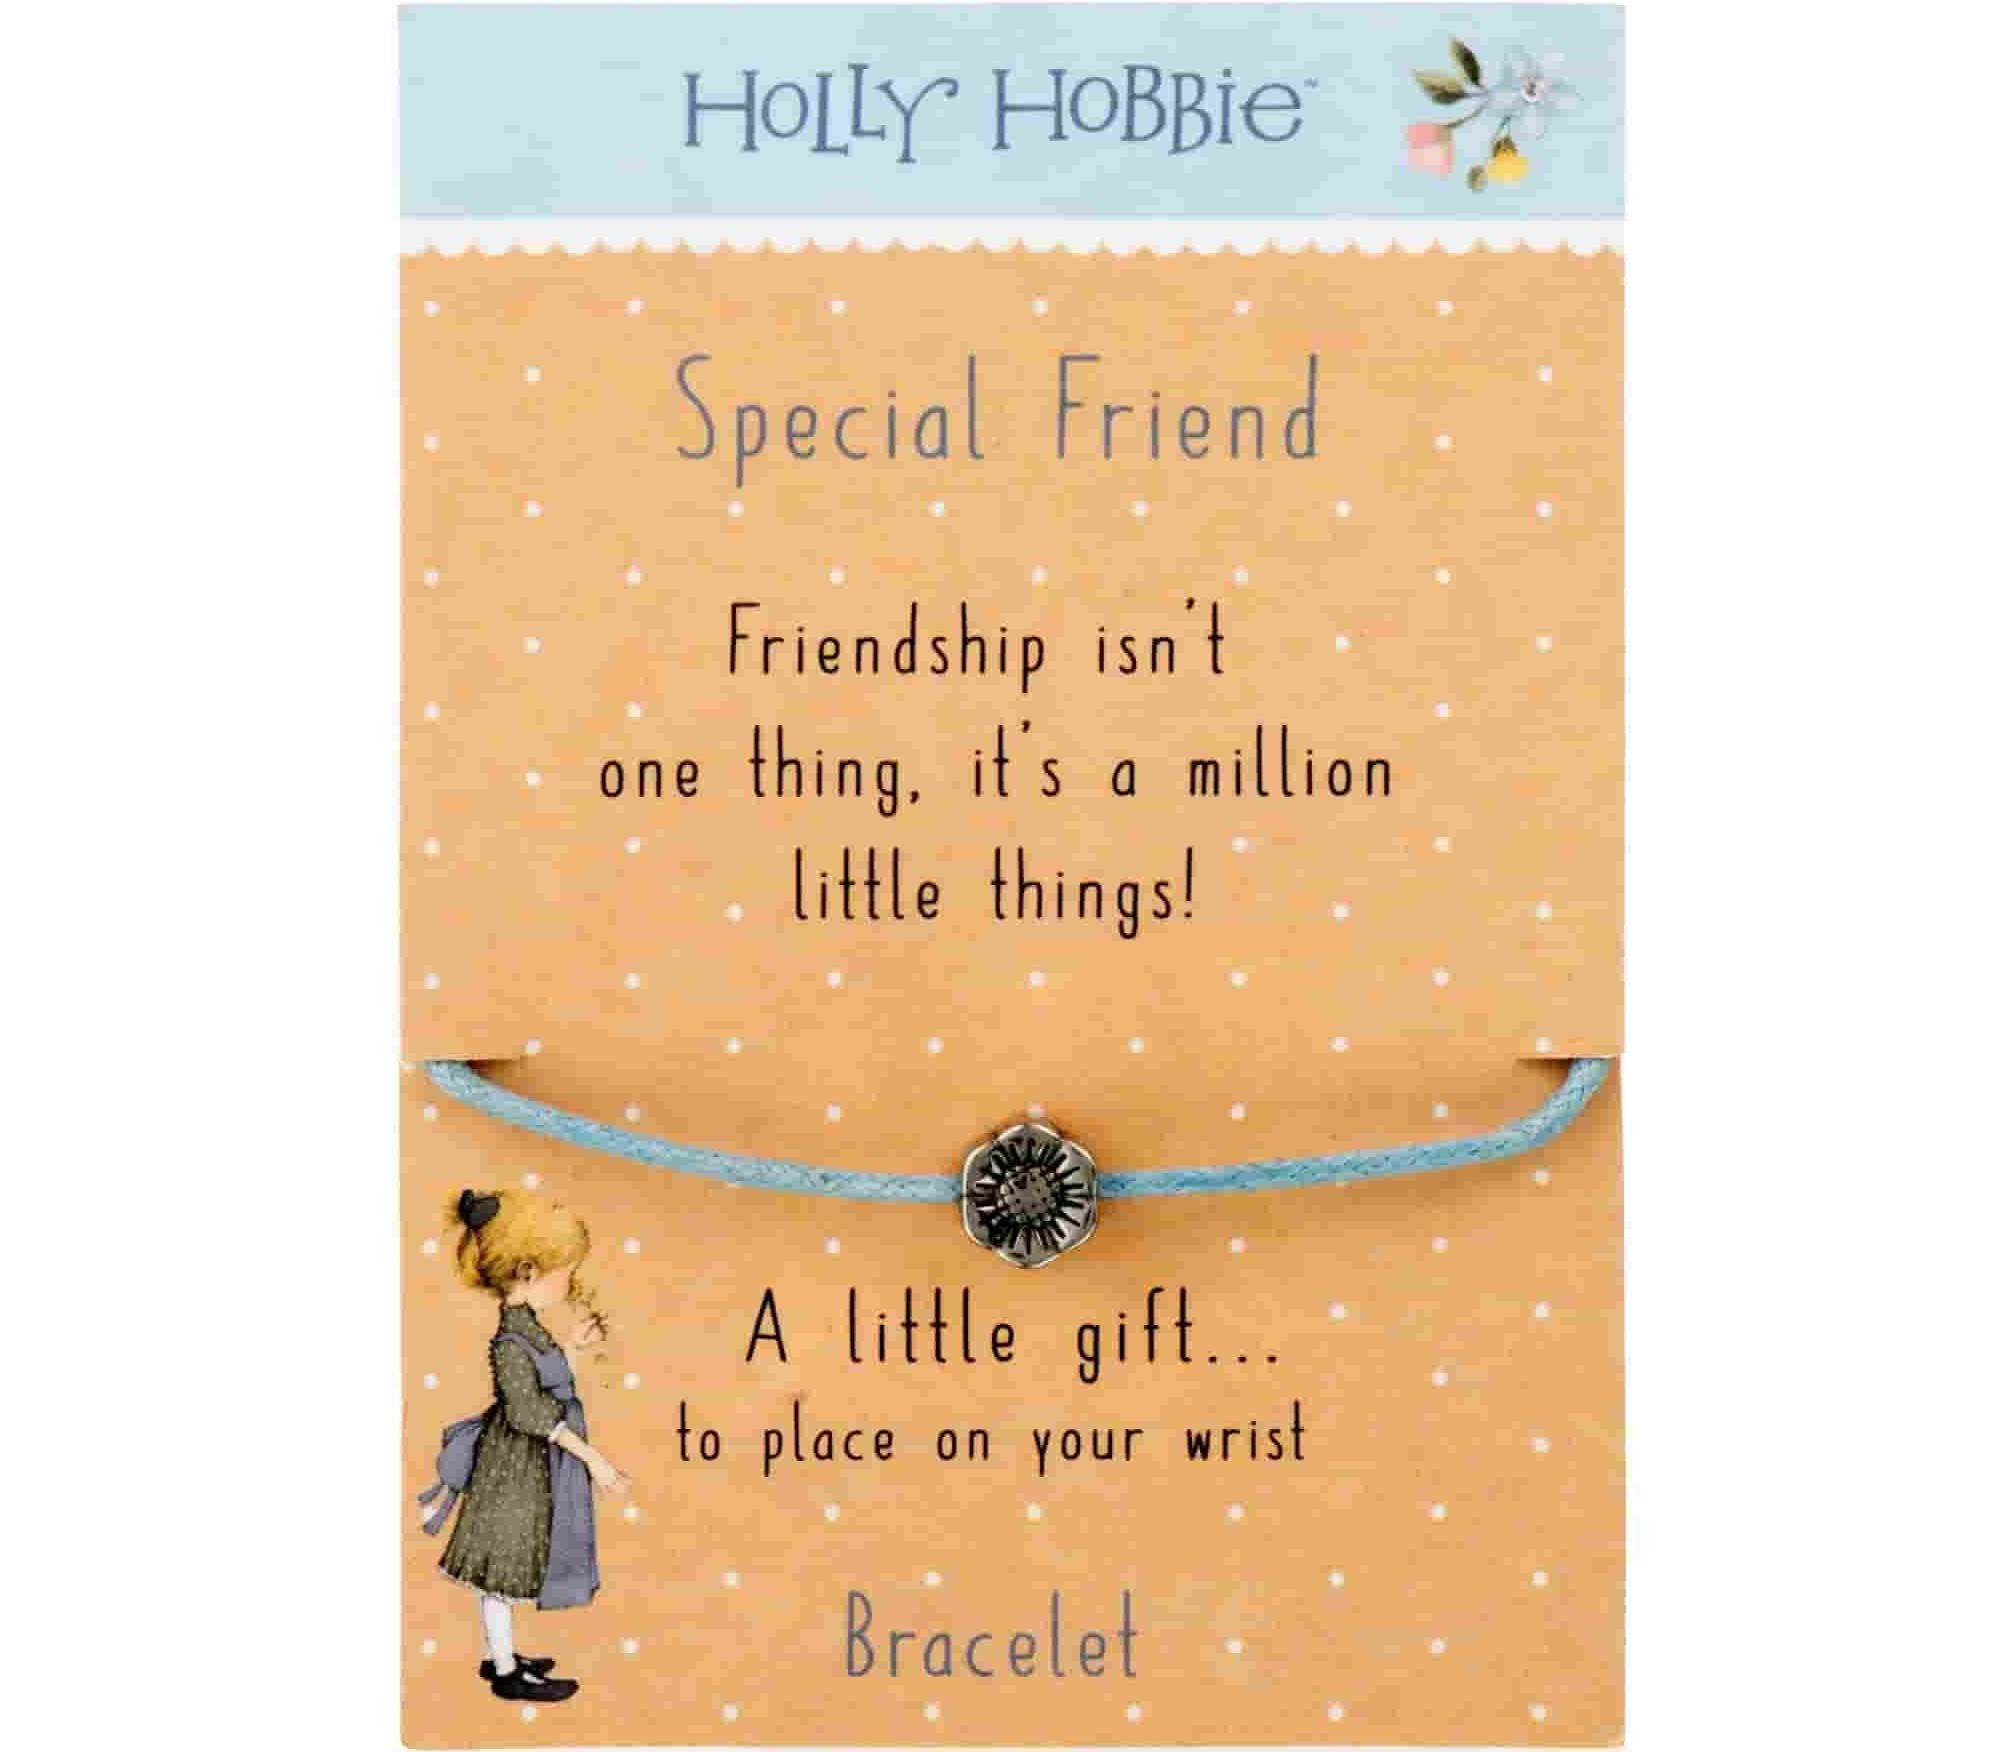 Gift Ideas for Bridesmaids; Clintons' holly hobby special friend bracelet